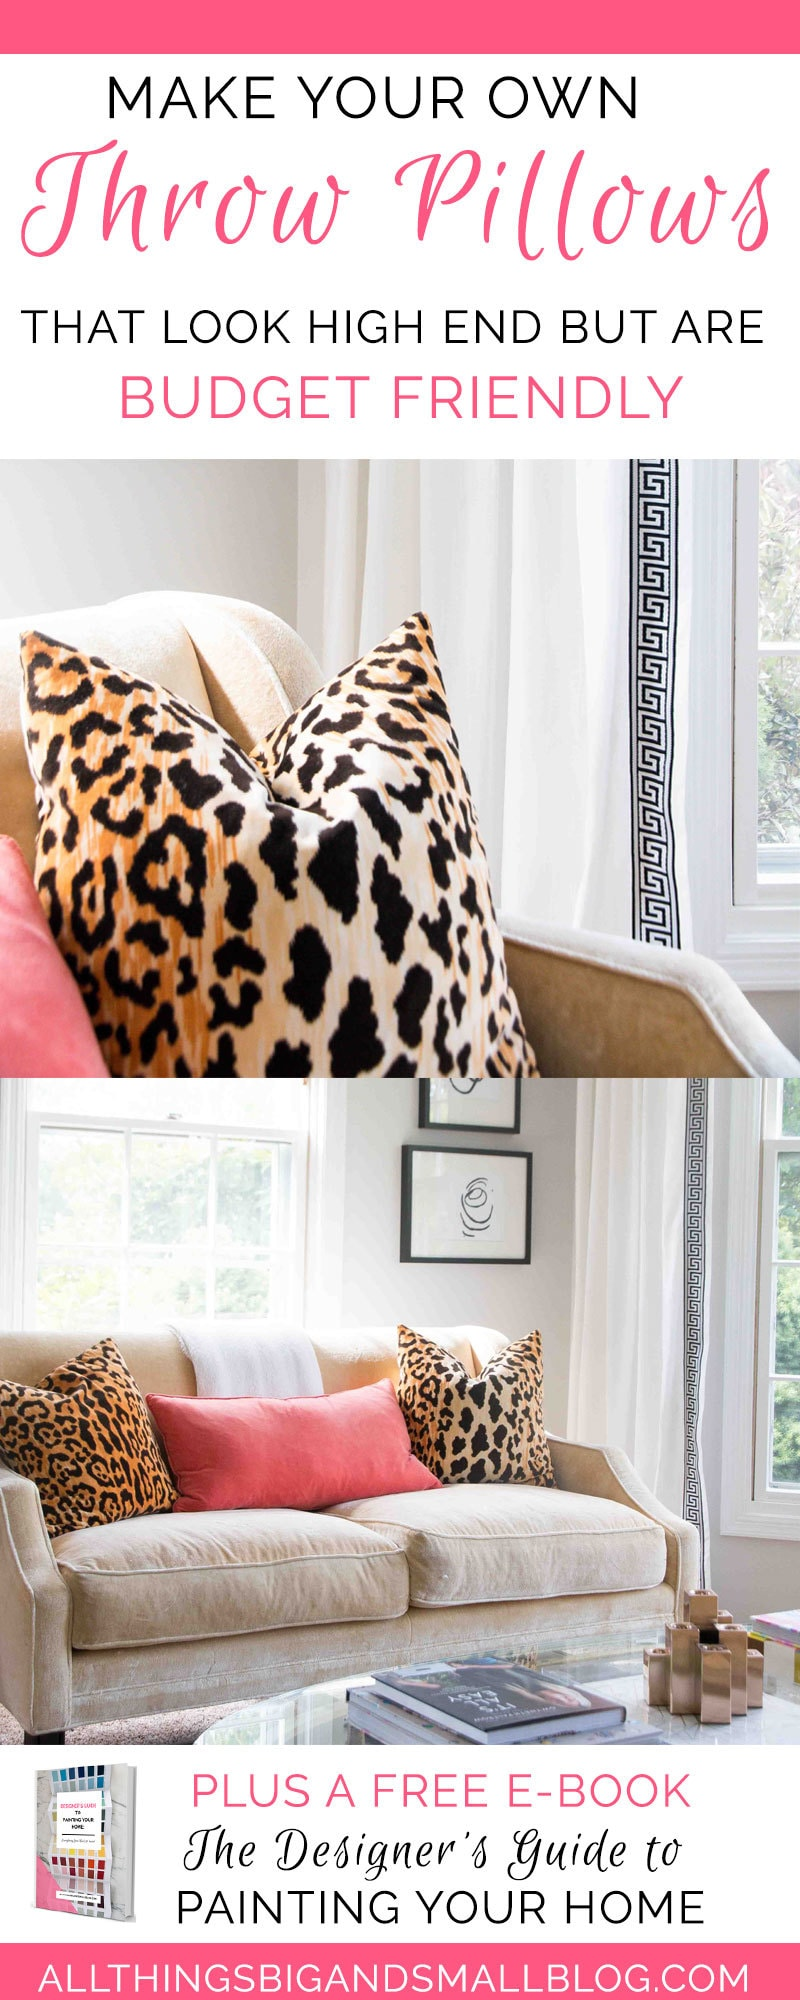 pillows ideas cover pillow case leopard fully best home furry fuzzy y outdoor animal soft print body fluffy